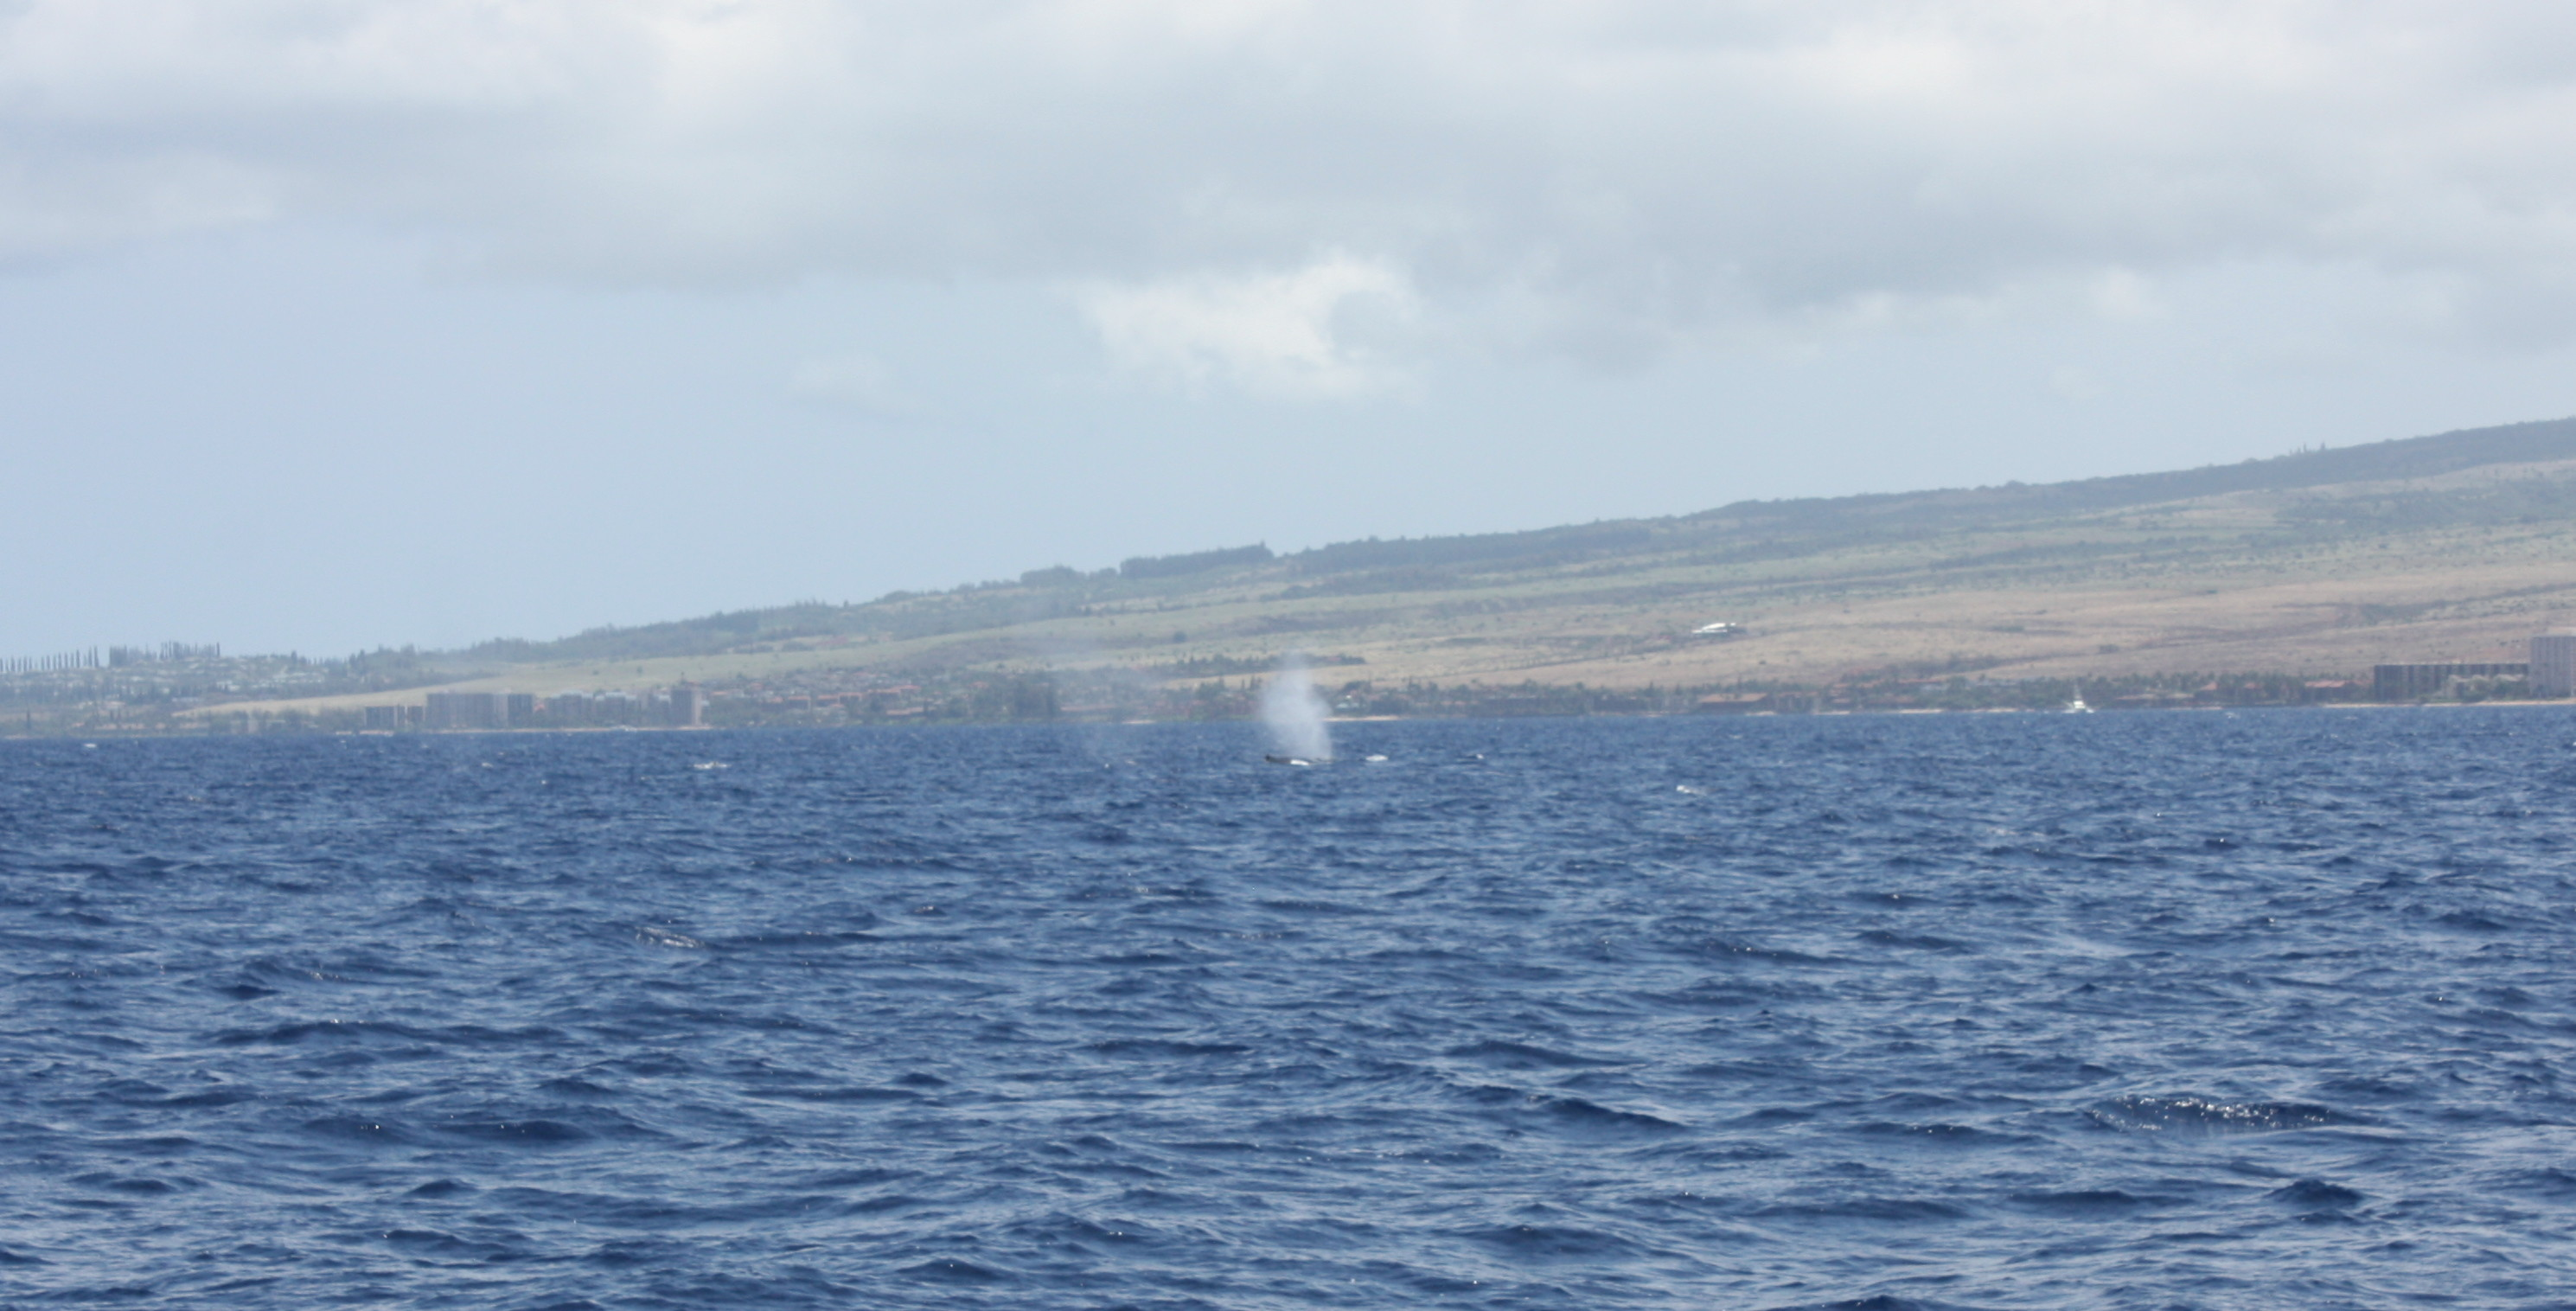 Maui, whales, whale watching, family activity, humpback whales, Trilogy whale watching